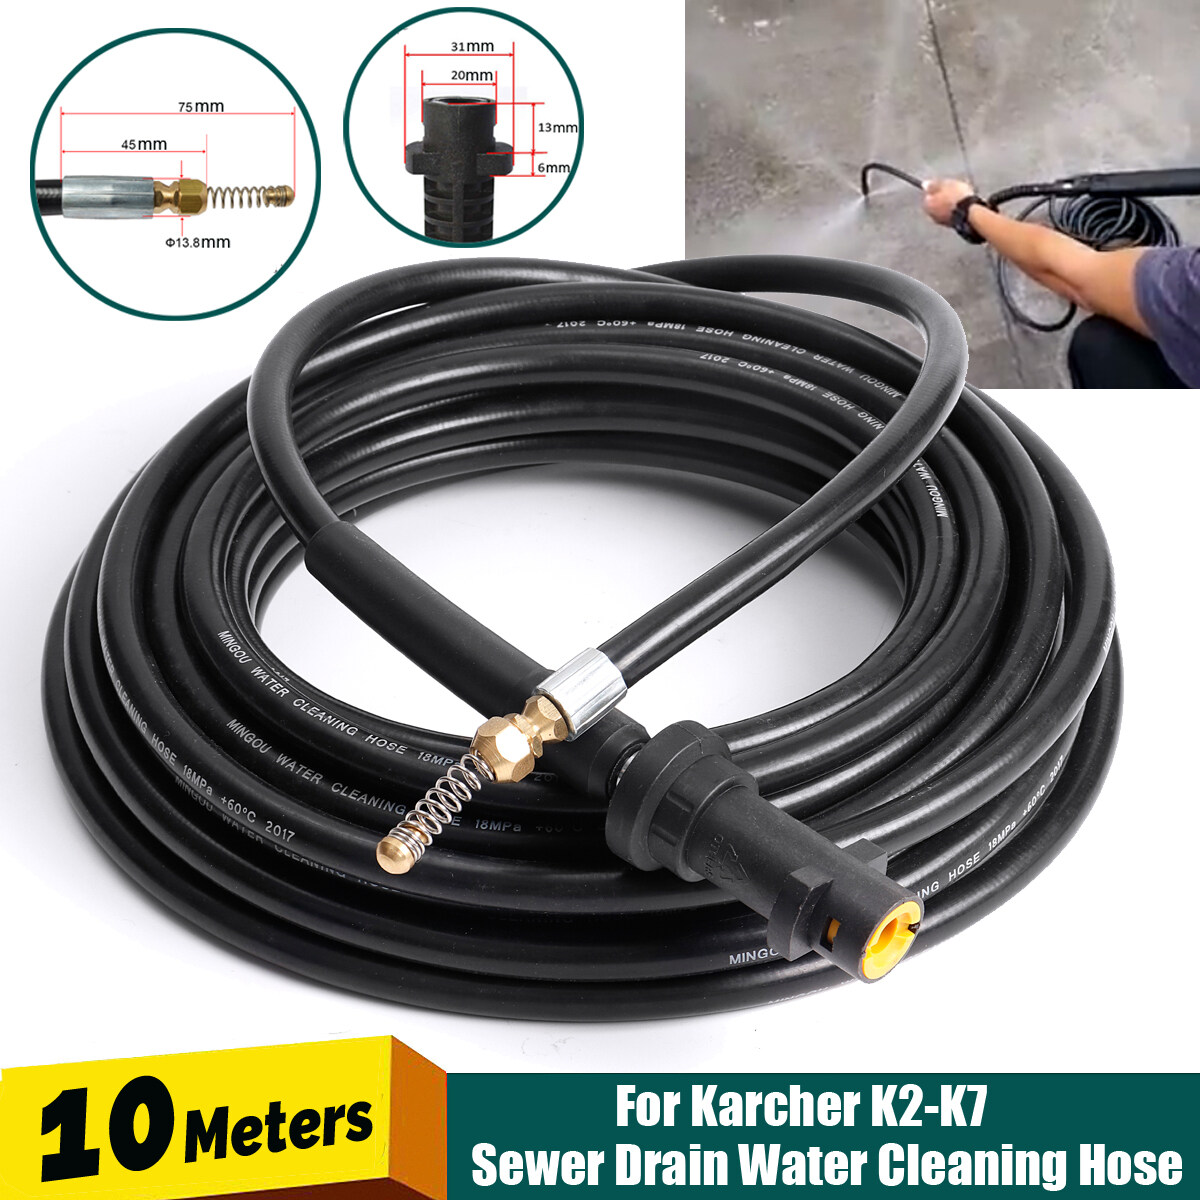 10m Drain Sewer Pipe Cleaning Hose Nozzle For Karcher K2 K7 High Pressure New Lazada